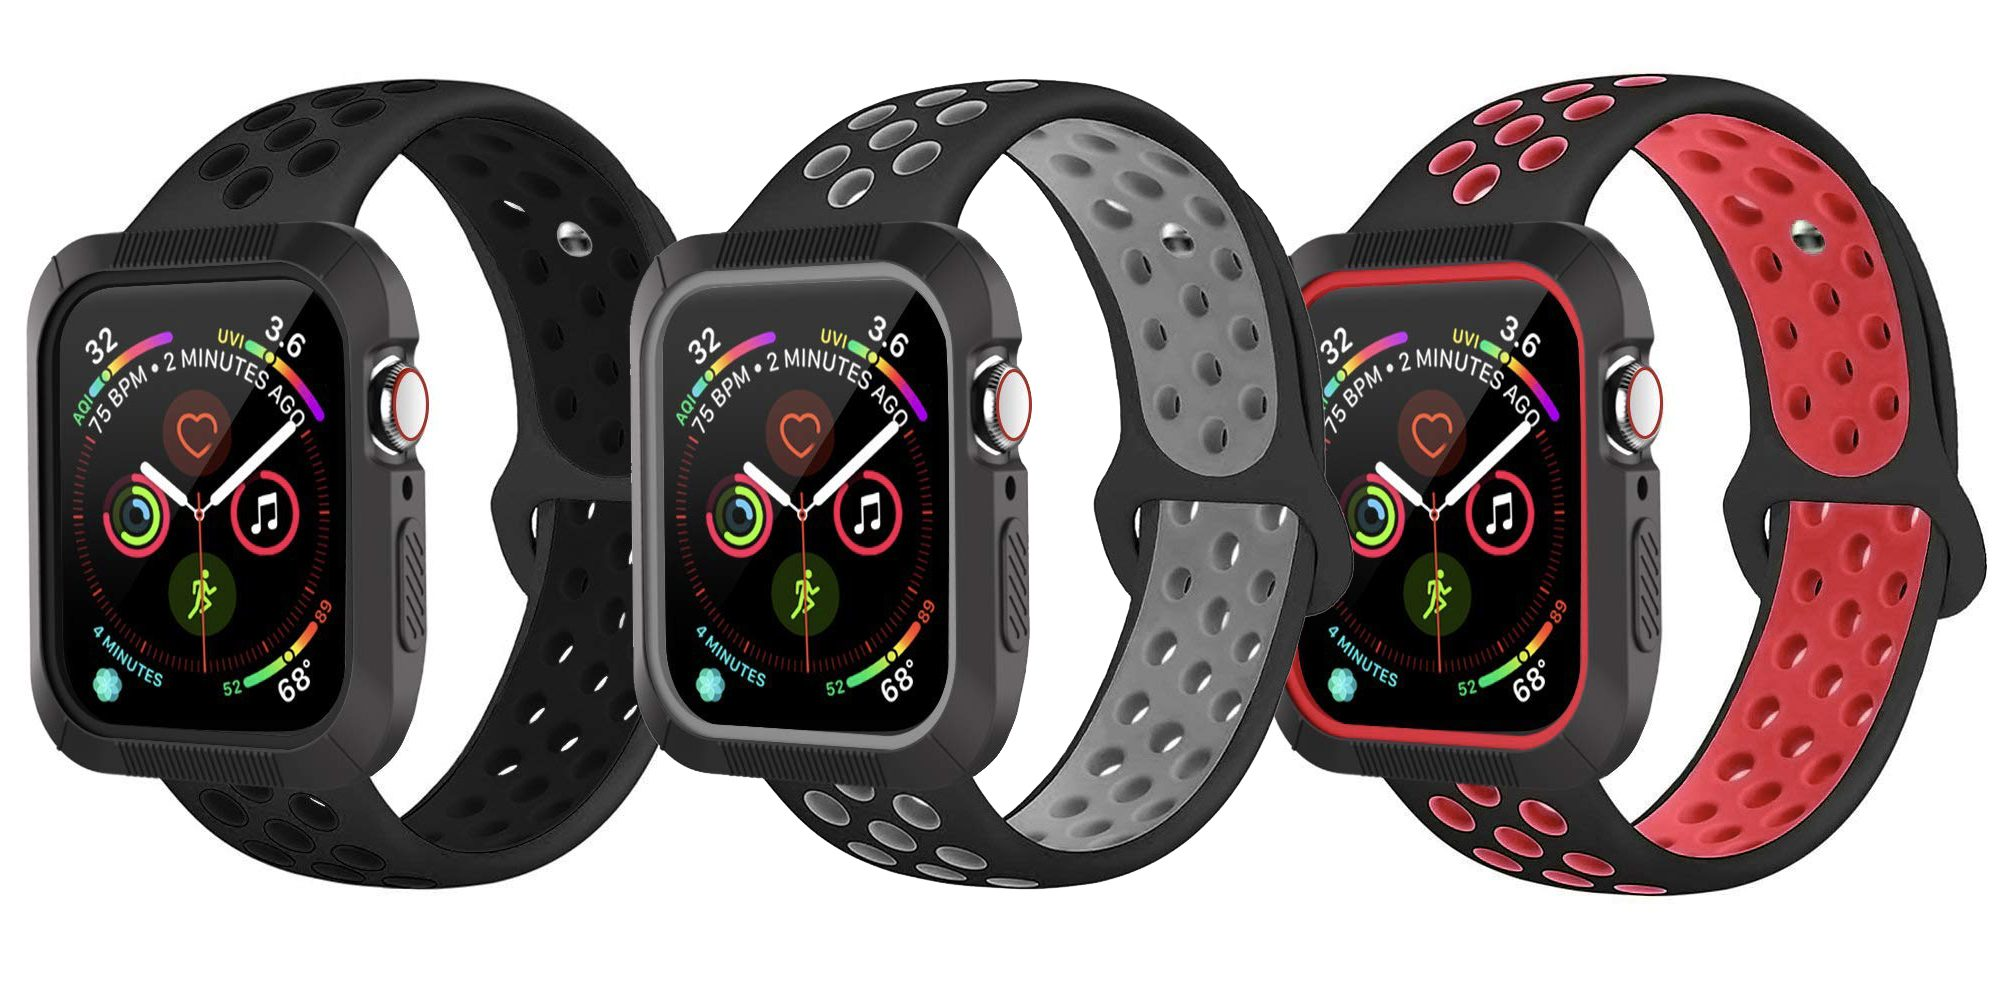 9to5Toys Last Call: Apple Watch Series 3 from $229, $550 ...